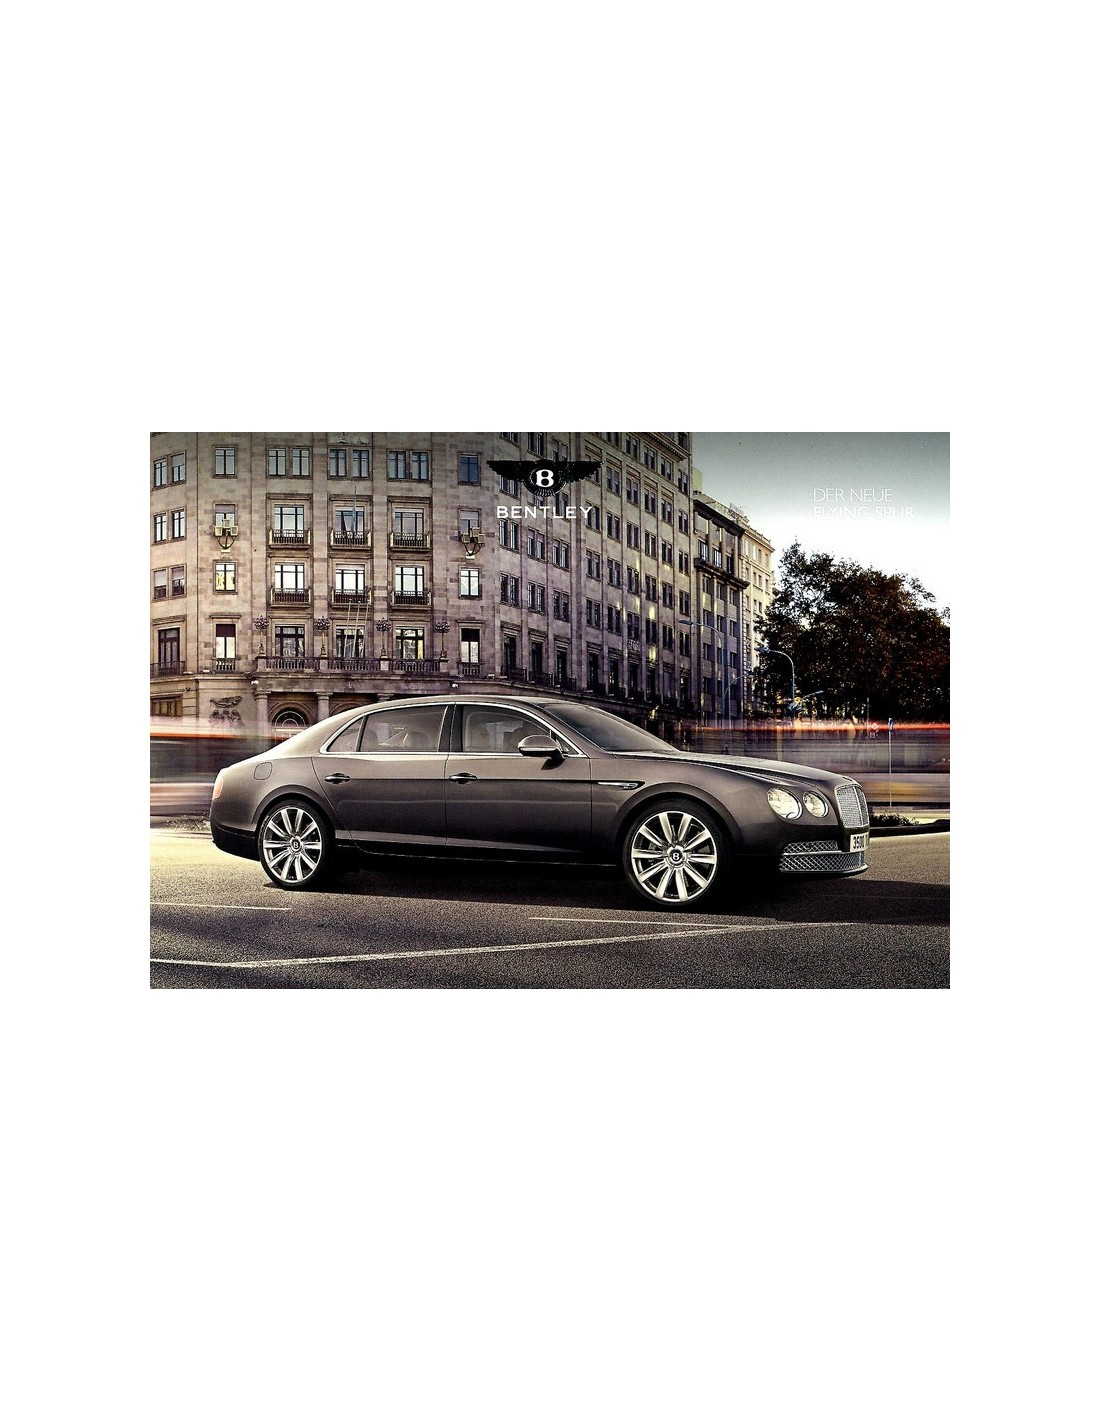 The Osbournes New Bentley Flying Spur: 2013 BENTLEY CONTINENTAL FLYING SPUR BROCHURE GERMAN